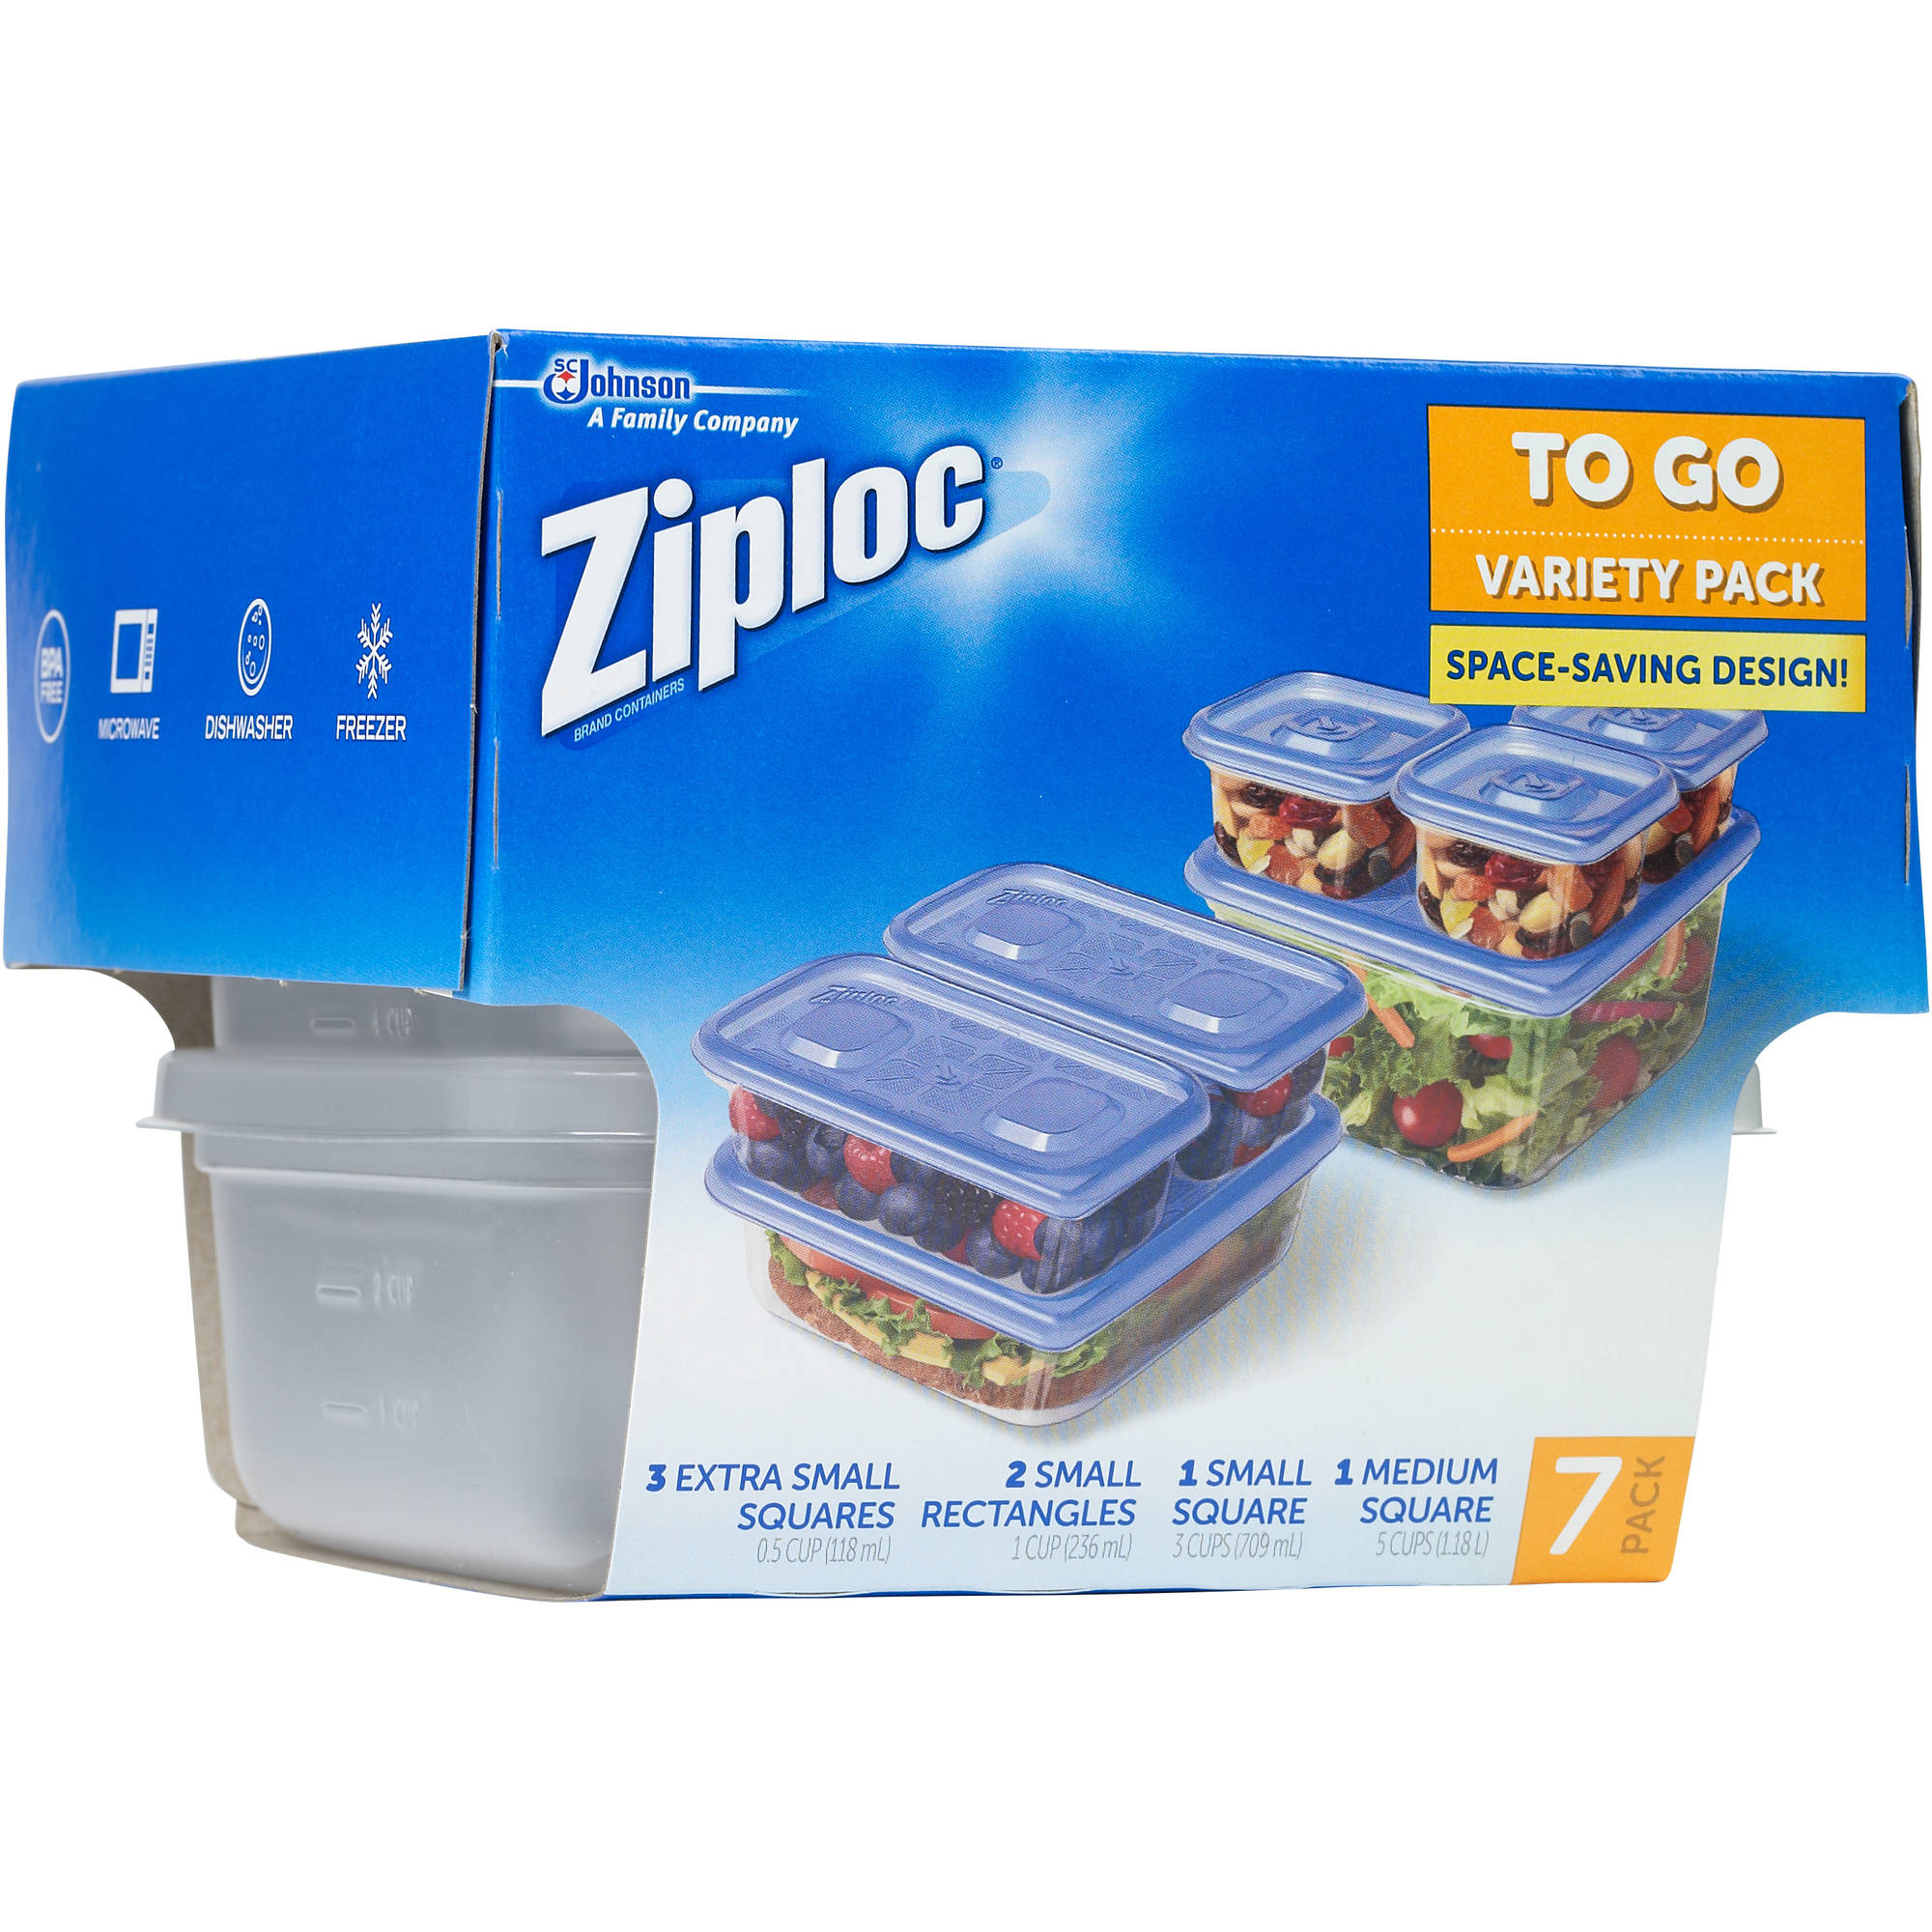 Ziploc To Go One Press Seal Variety Pack - 7 CT